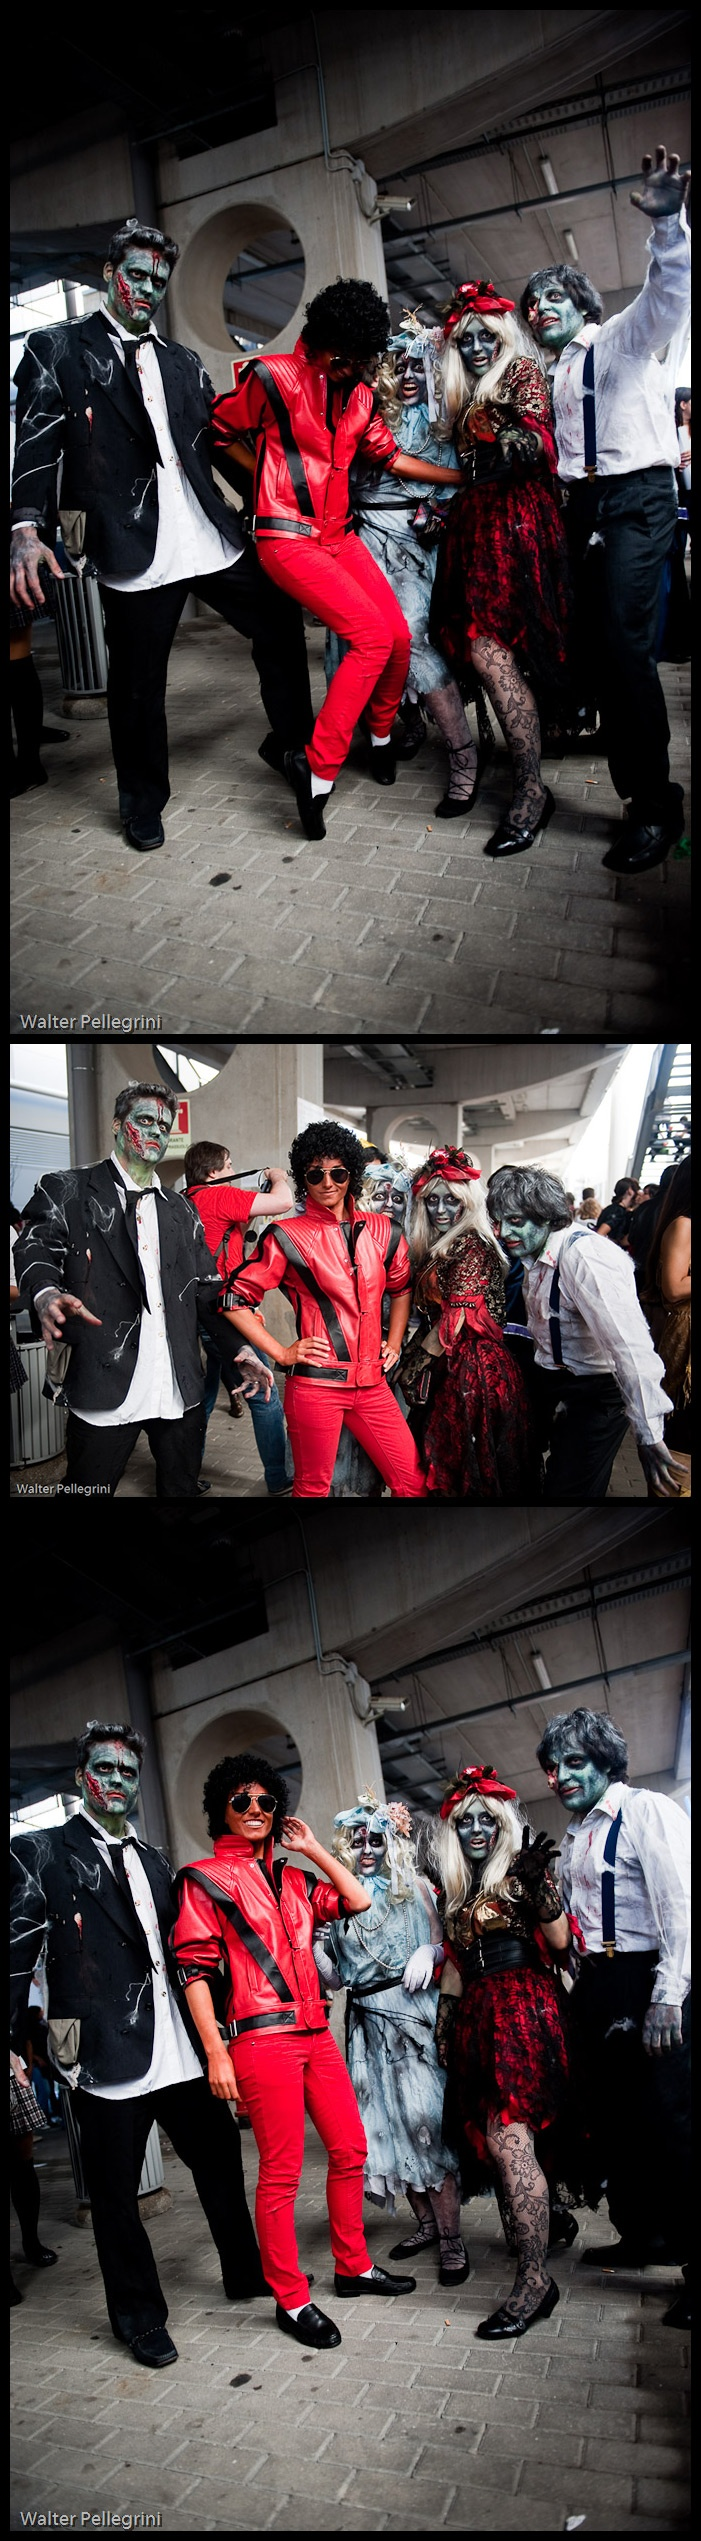 Okay, this Thiller group cosplay is one of the greatest things I've seen...and trust me, that's saying a lot. They even included the blonde zombie girl! It's those little details that make me giddy! :-D